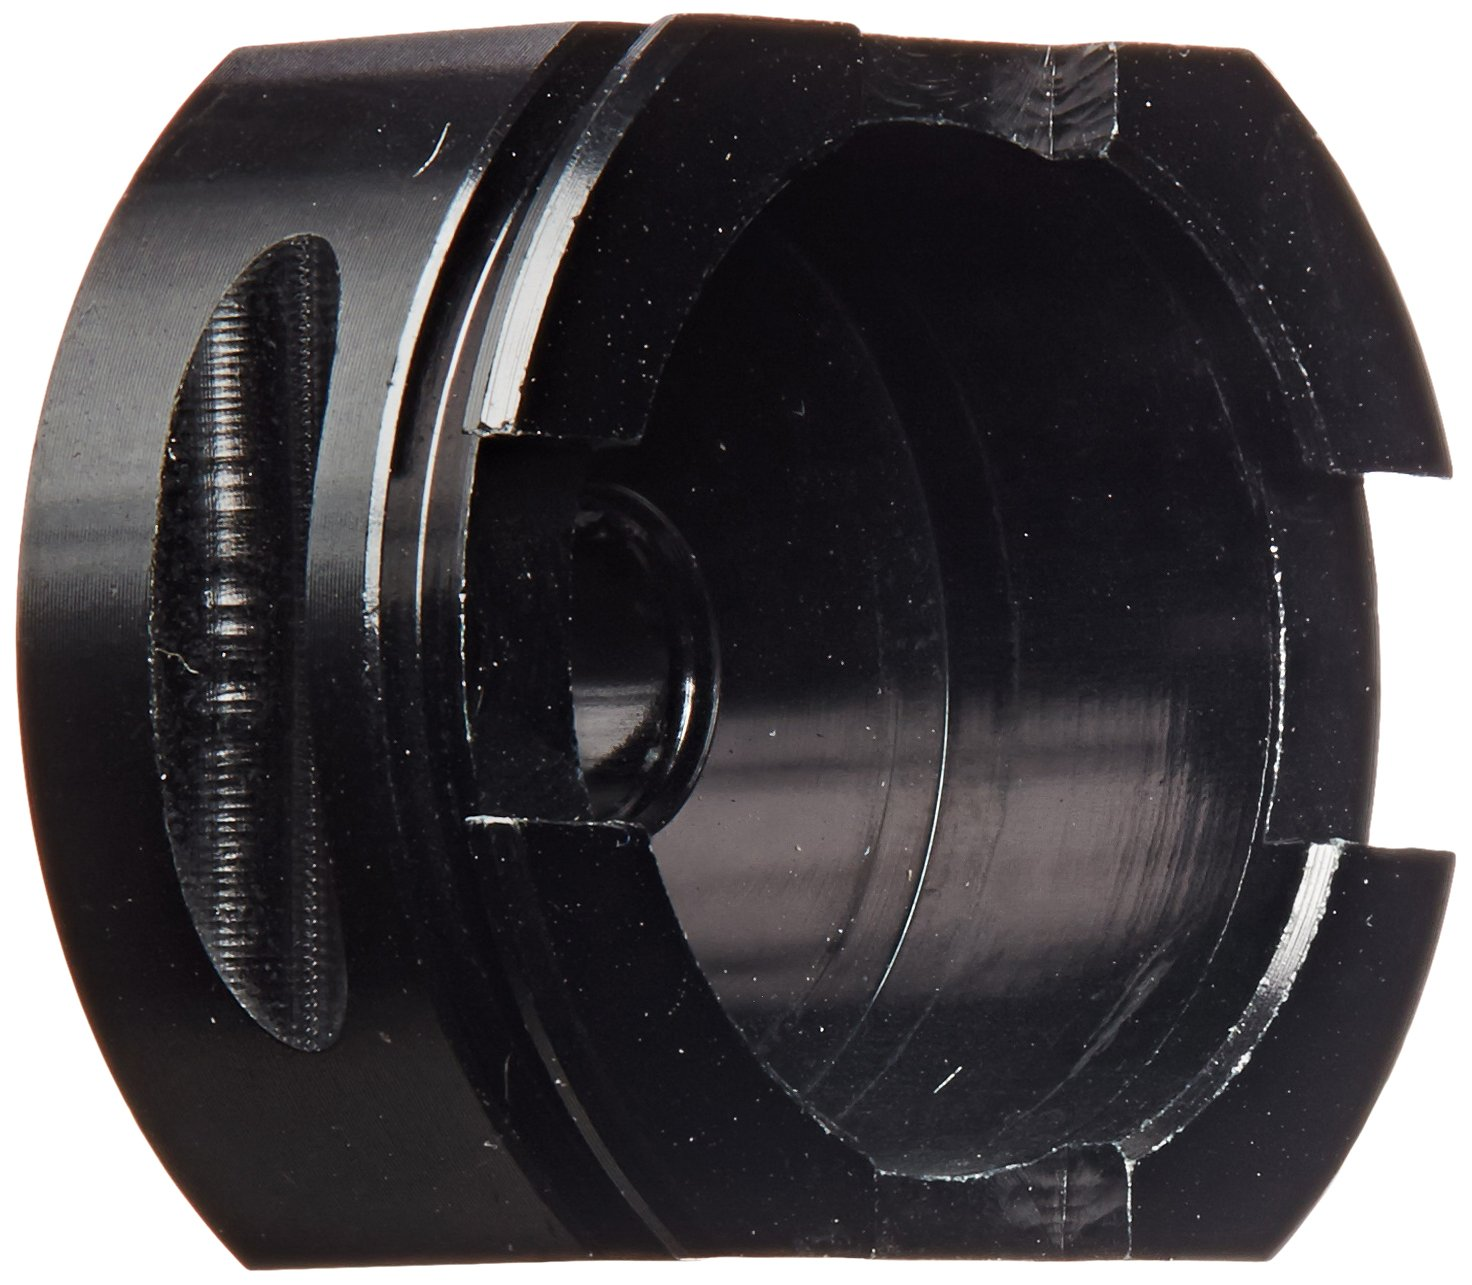 Hitachi 884341 Replacement Part for Valve Bushing Nt65Ma3